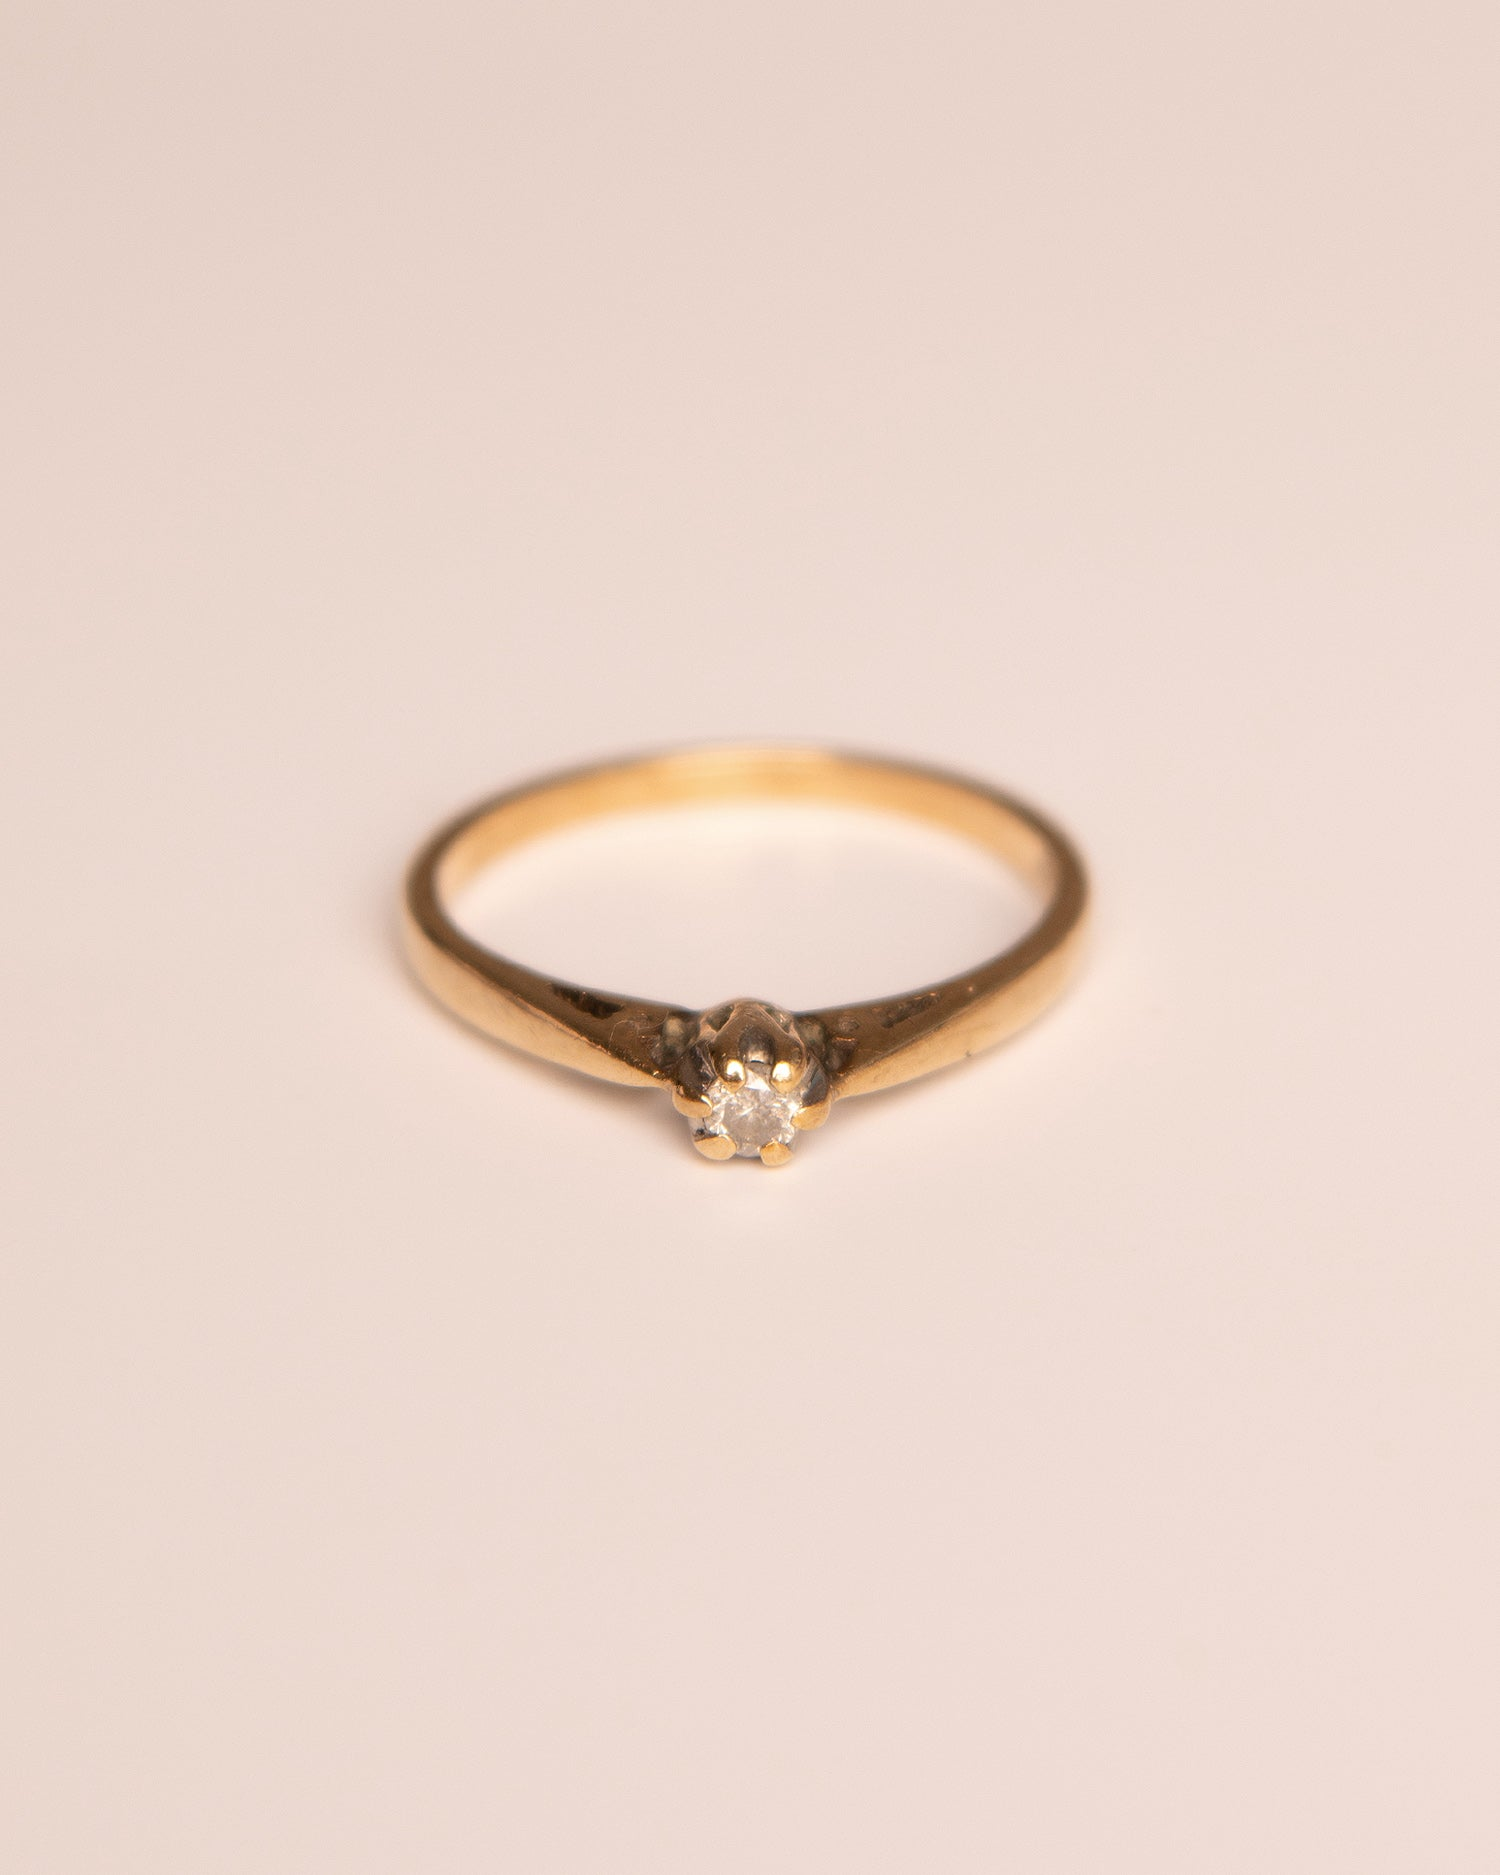 Etty 9ct Gold Solitaire Diamond Ring